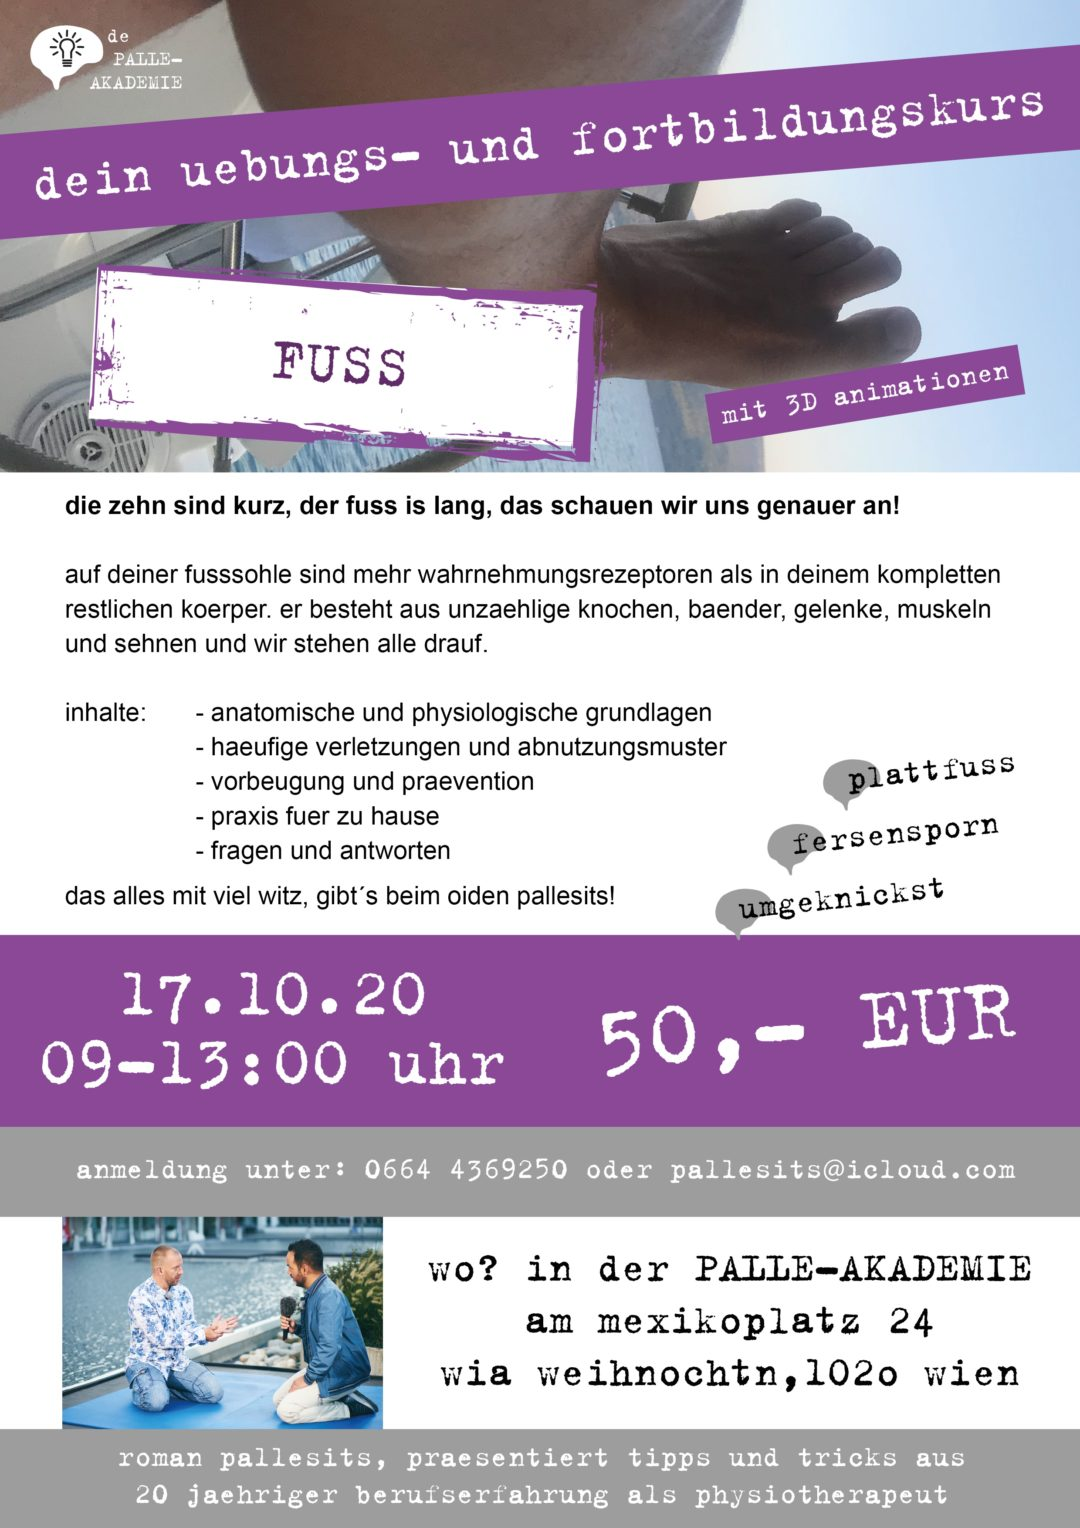 fuss-workshop-physiotherapie-wien-romanpallesits-palle-akademie